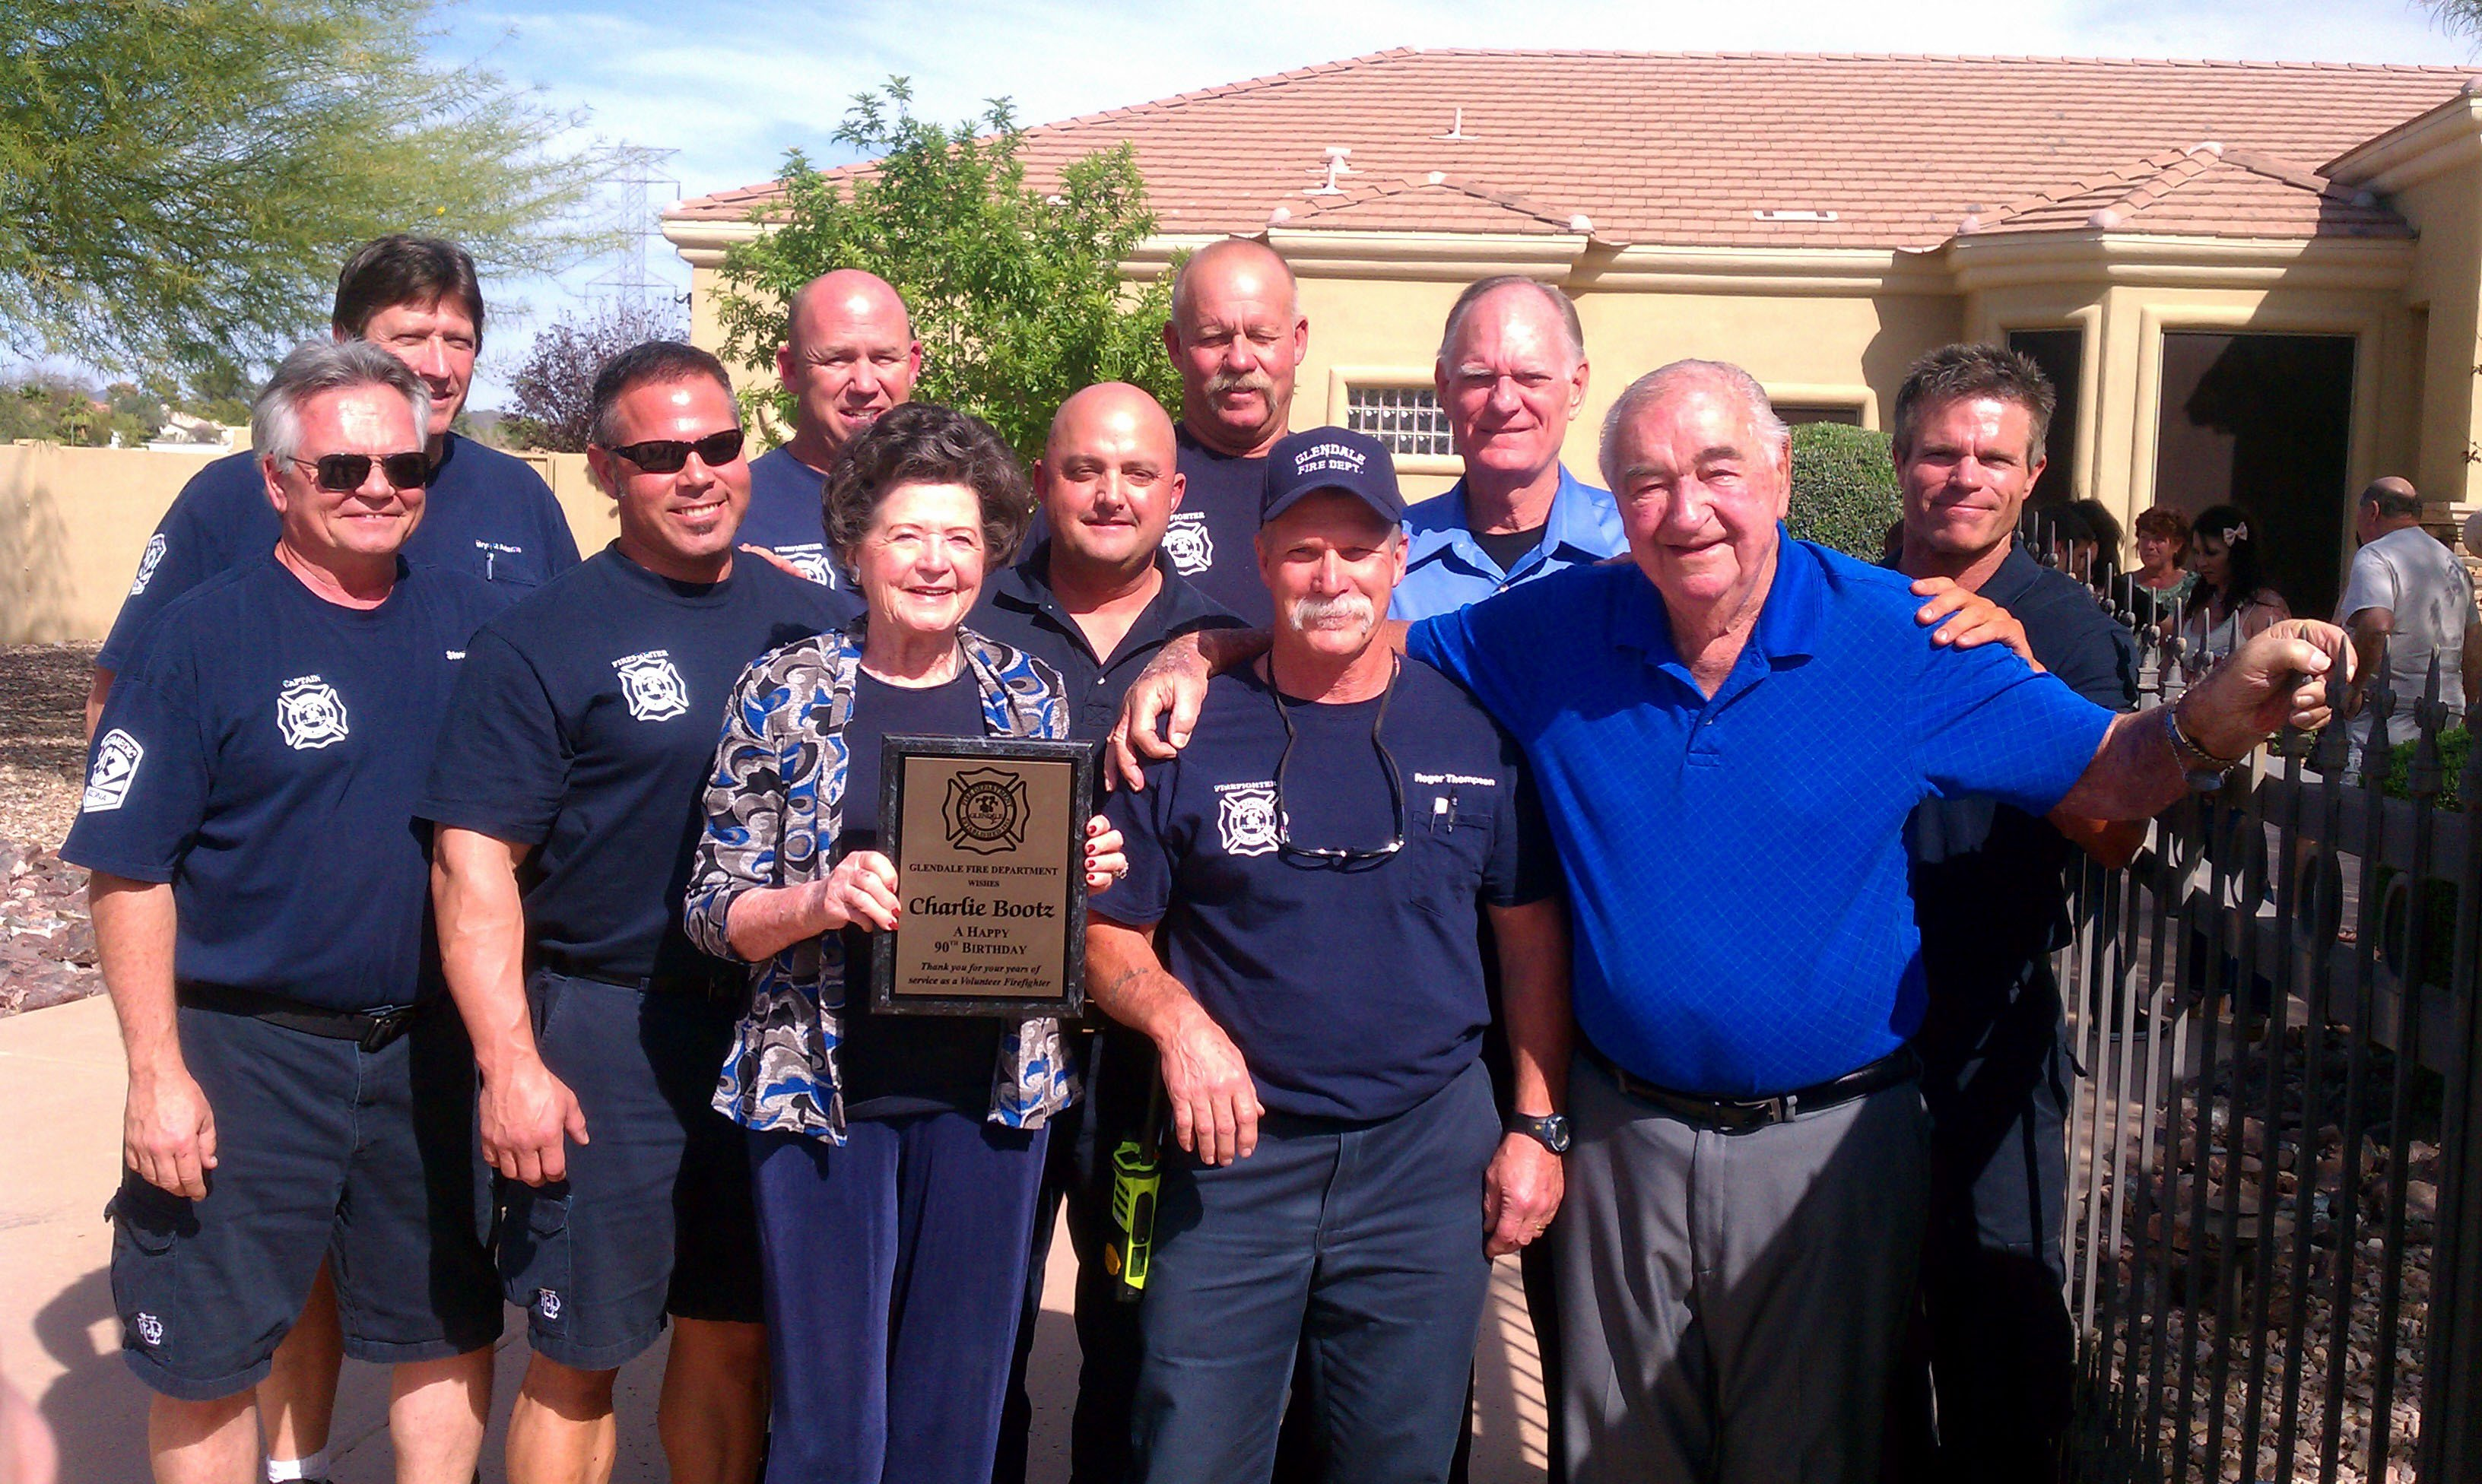 The Glendale Fire Department honored Charlie Bootz, who turned 90 on Sunday. (Source: Glendale Fire Department)